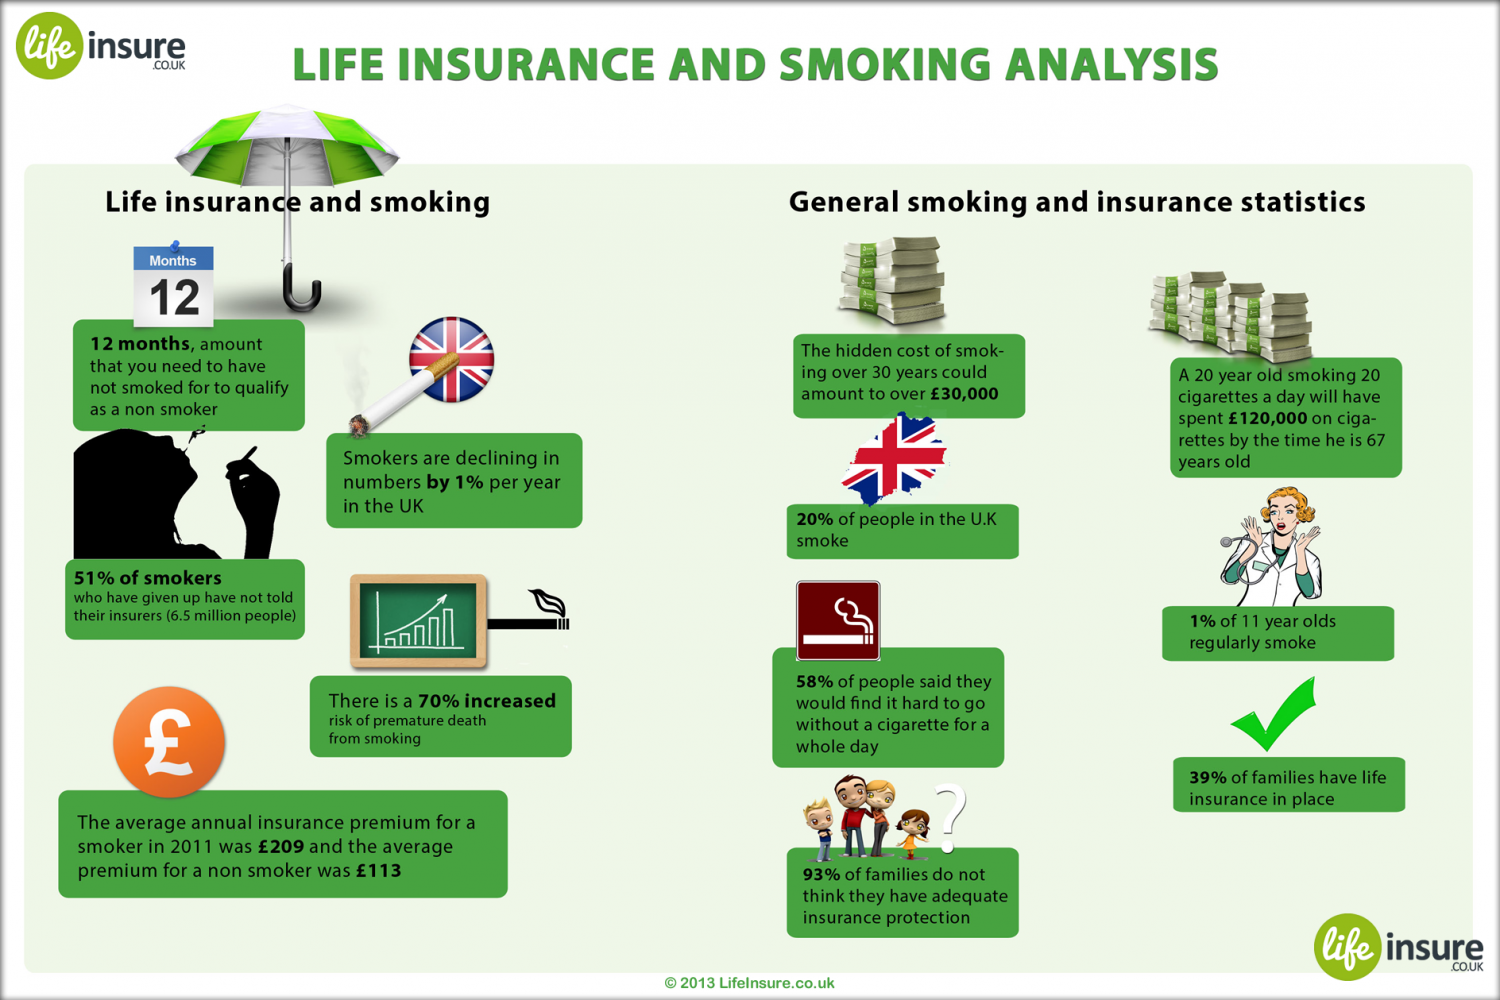 Life Insurance and Smoking Analysis Infographic